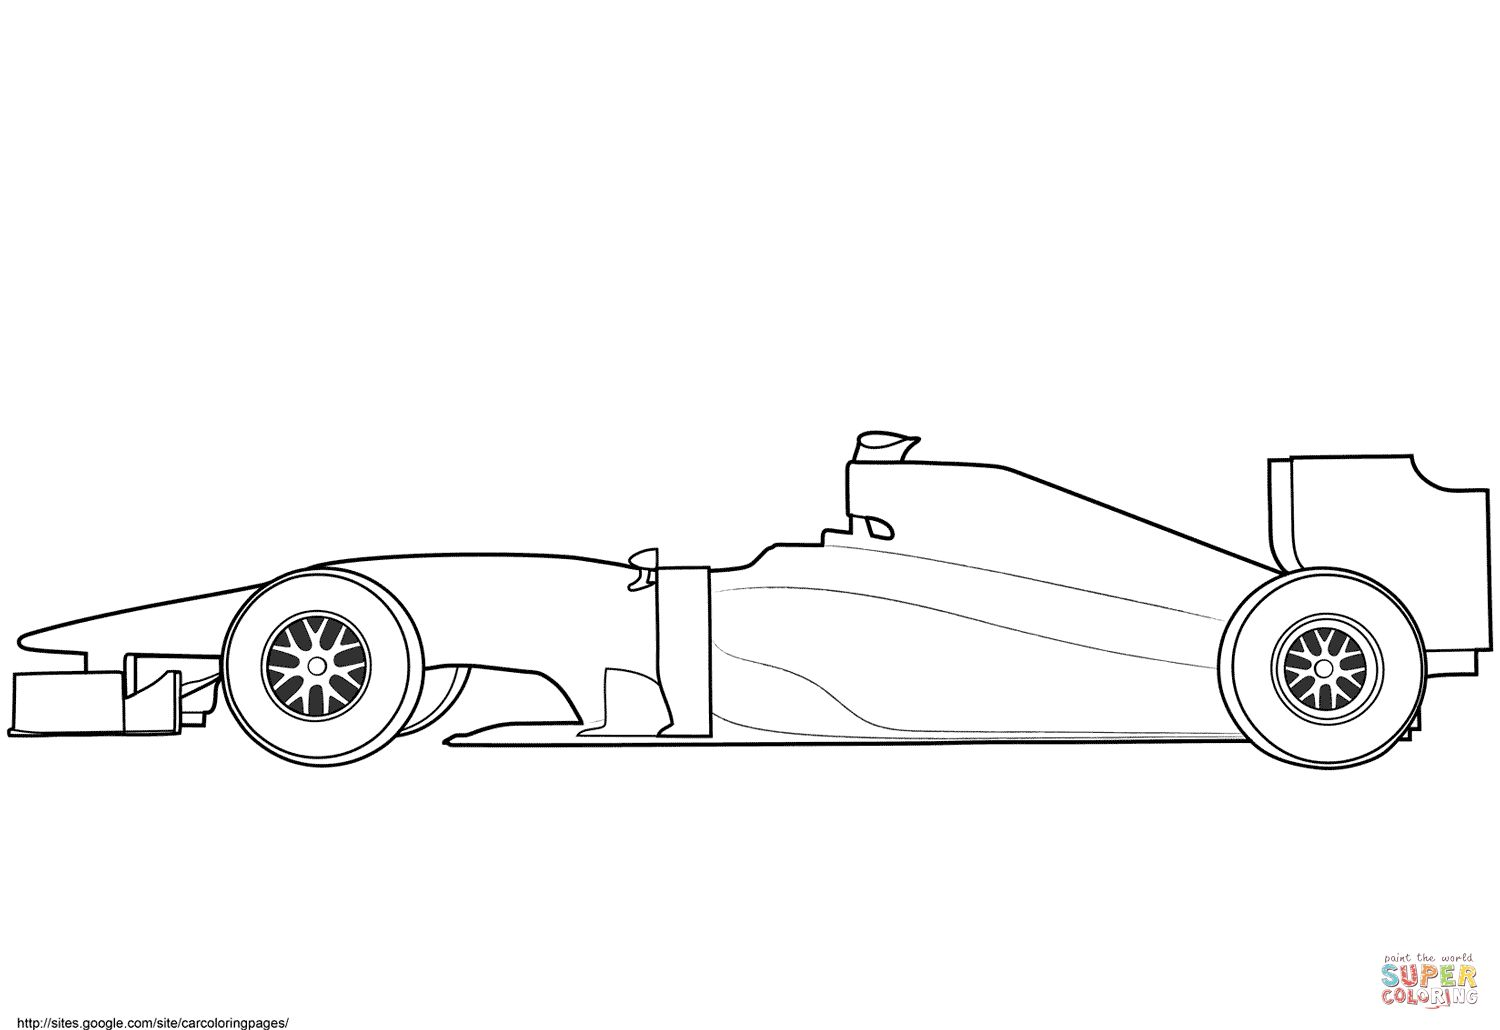 10 Indy Car Cars Coloring Pages Race Car Coloring Pages Sports Coloring Pages